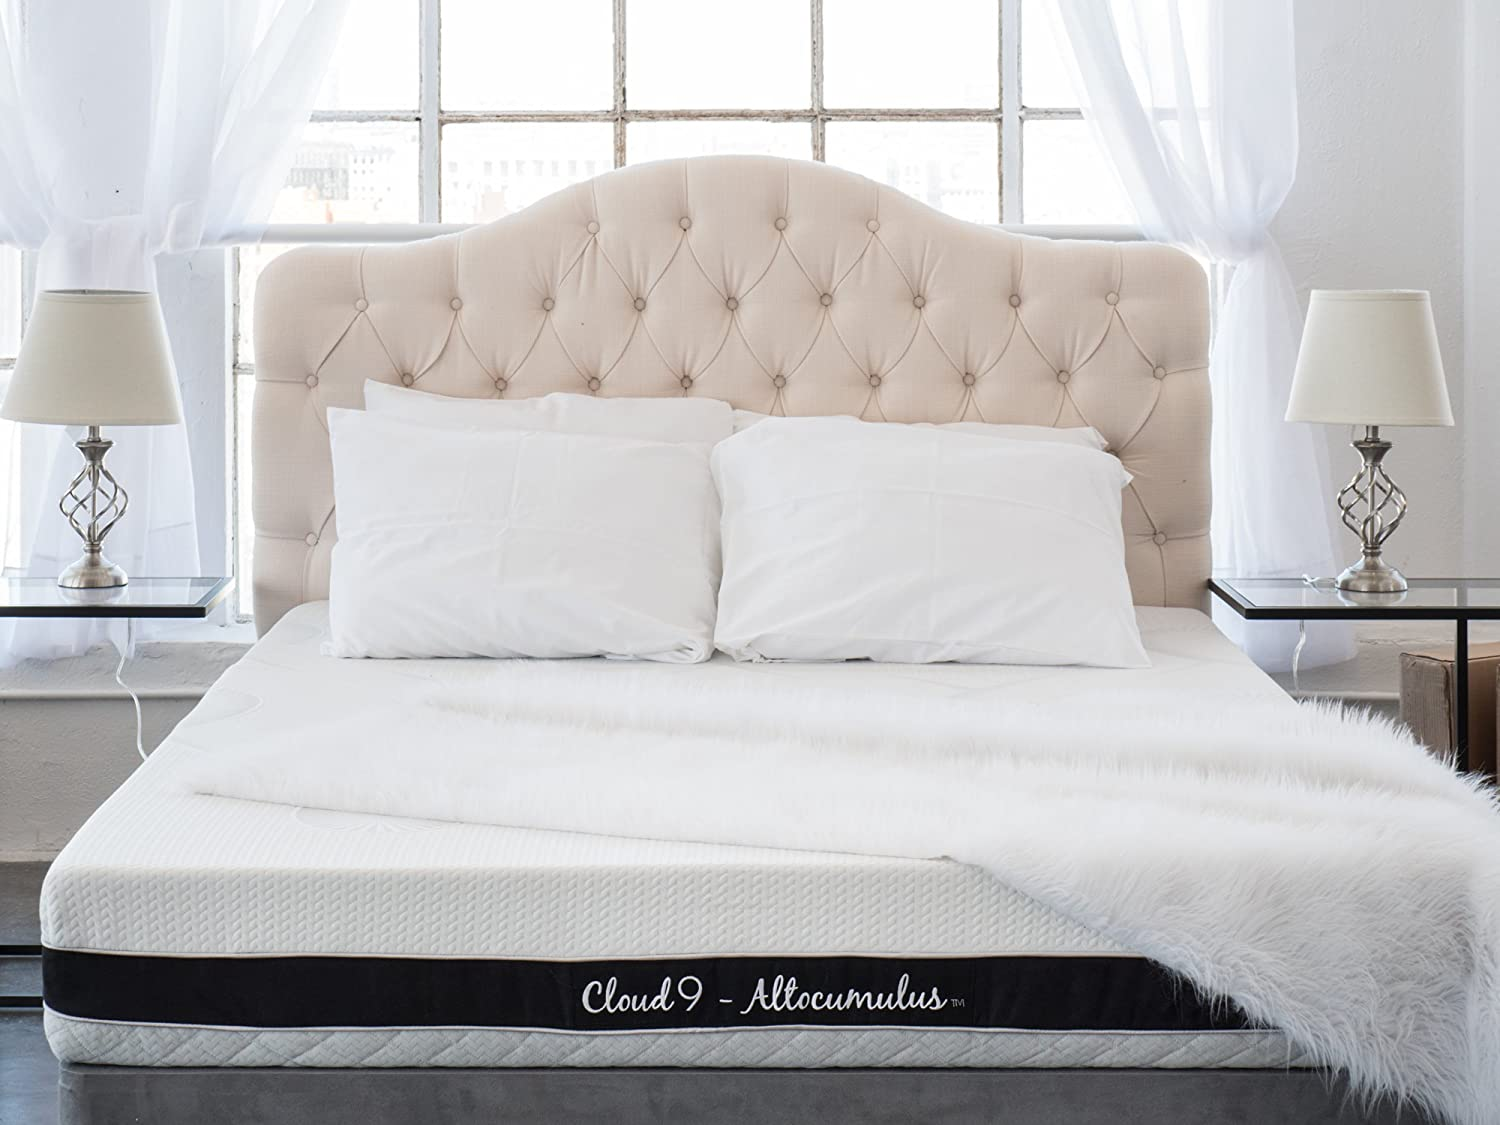 Cloud 9 Closed Cell Foam Mattress Plush Queen 11in, True Adaptive Support, Zero Pressure Points, Sleeps Cool, Tencel Fabric, USA Made, Certi-PUR Oeko-Tex 100 Certified, 10-Yr Wty, 100 day trial